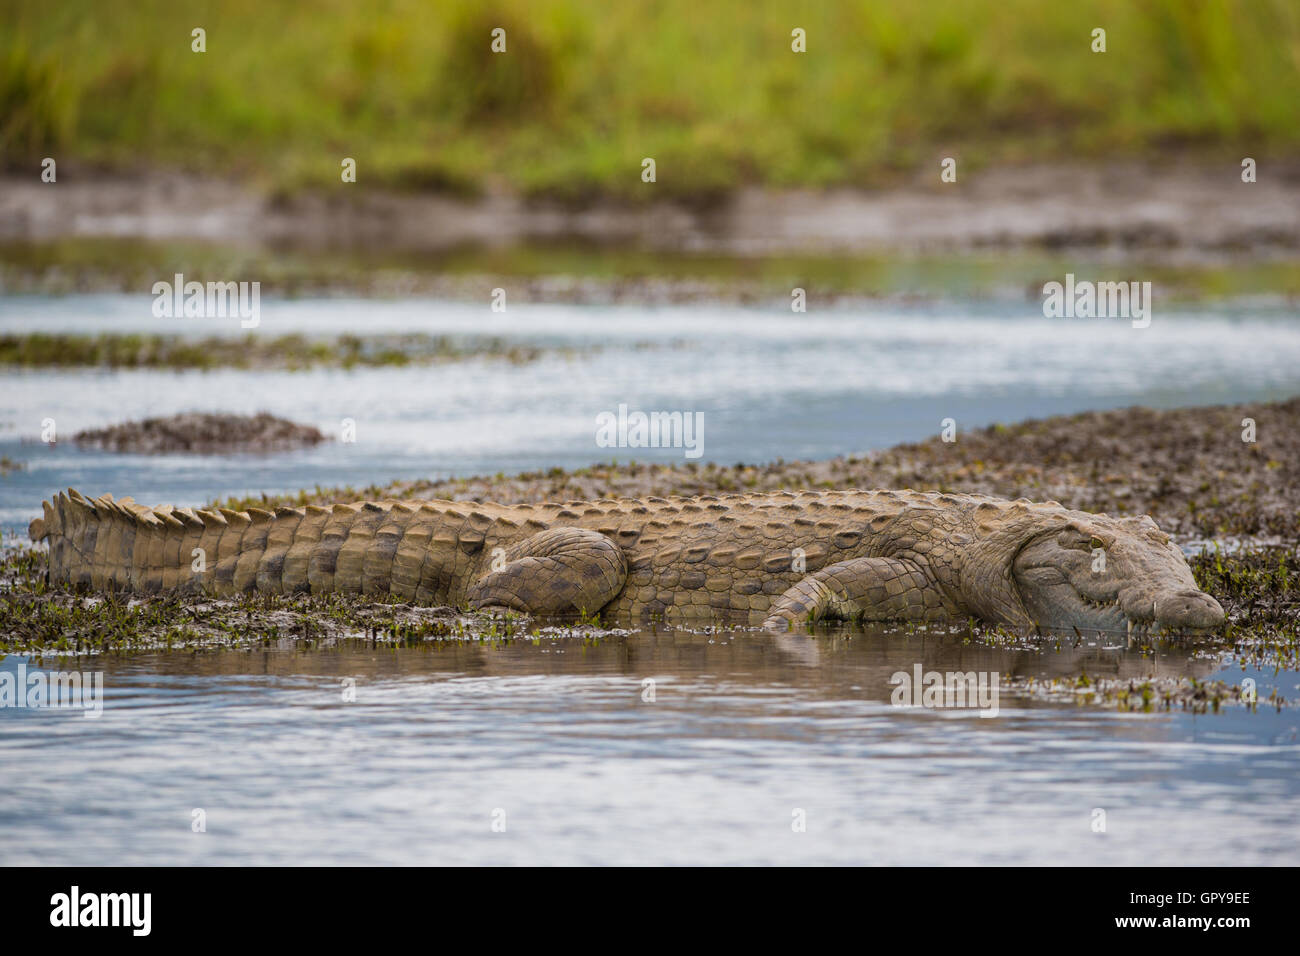 Side view full length Nile Crocodile lying on the edge of the water - Stock Image